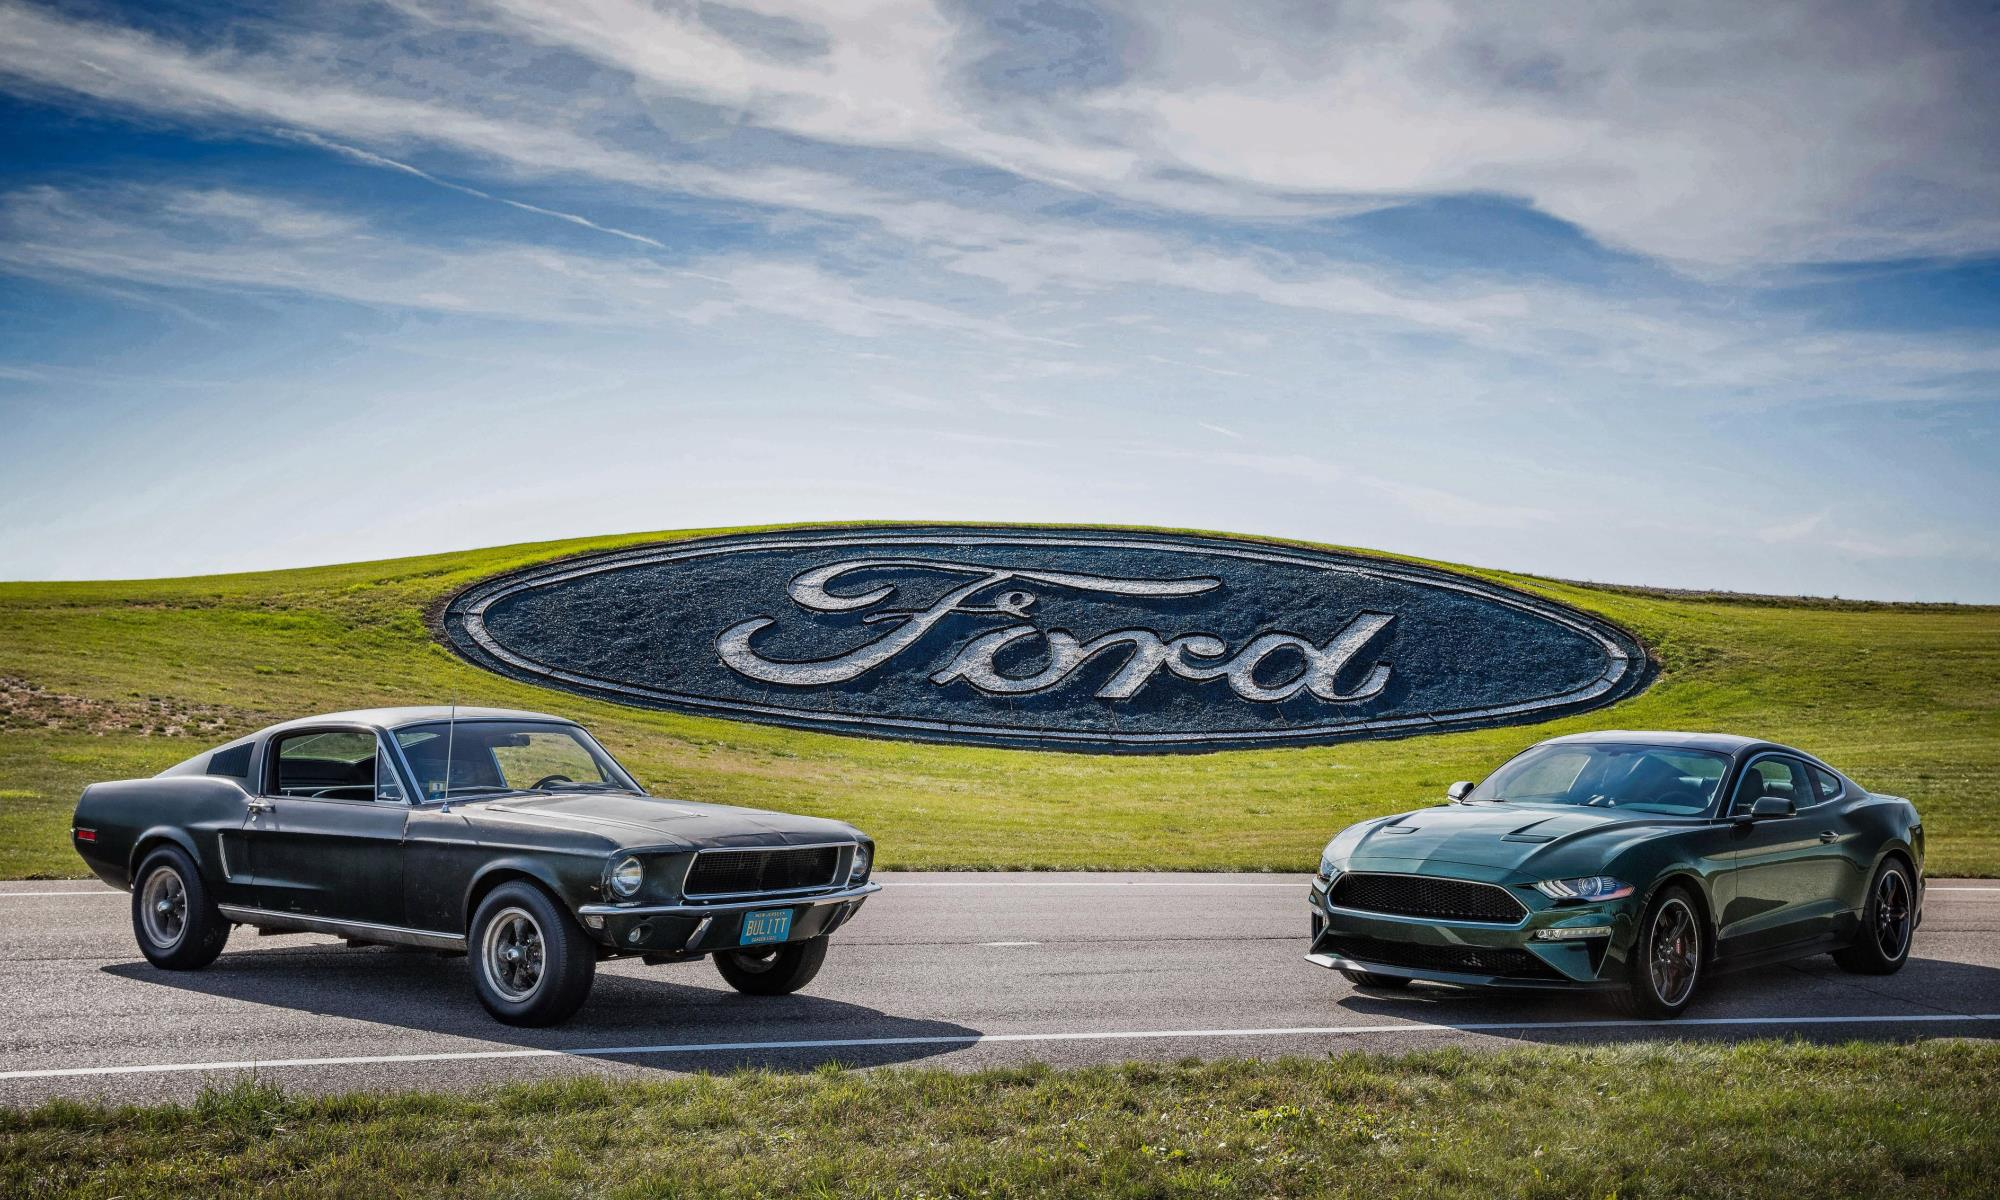 Original Bullitt Mustang movie car with its new namesake